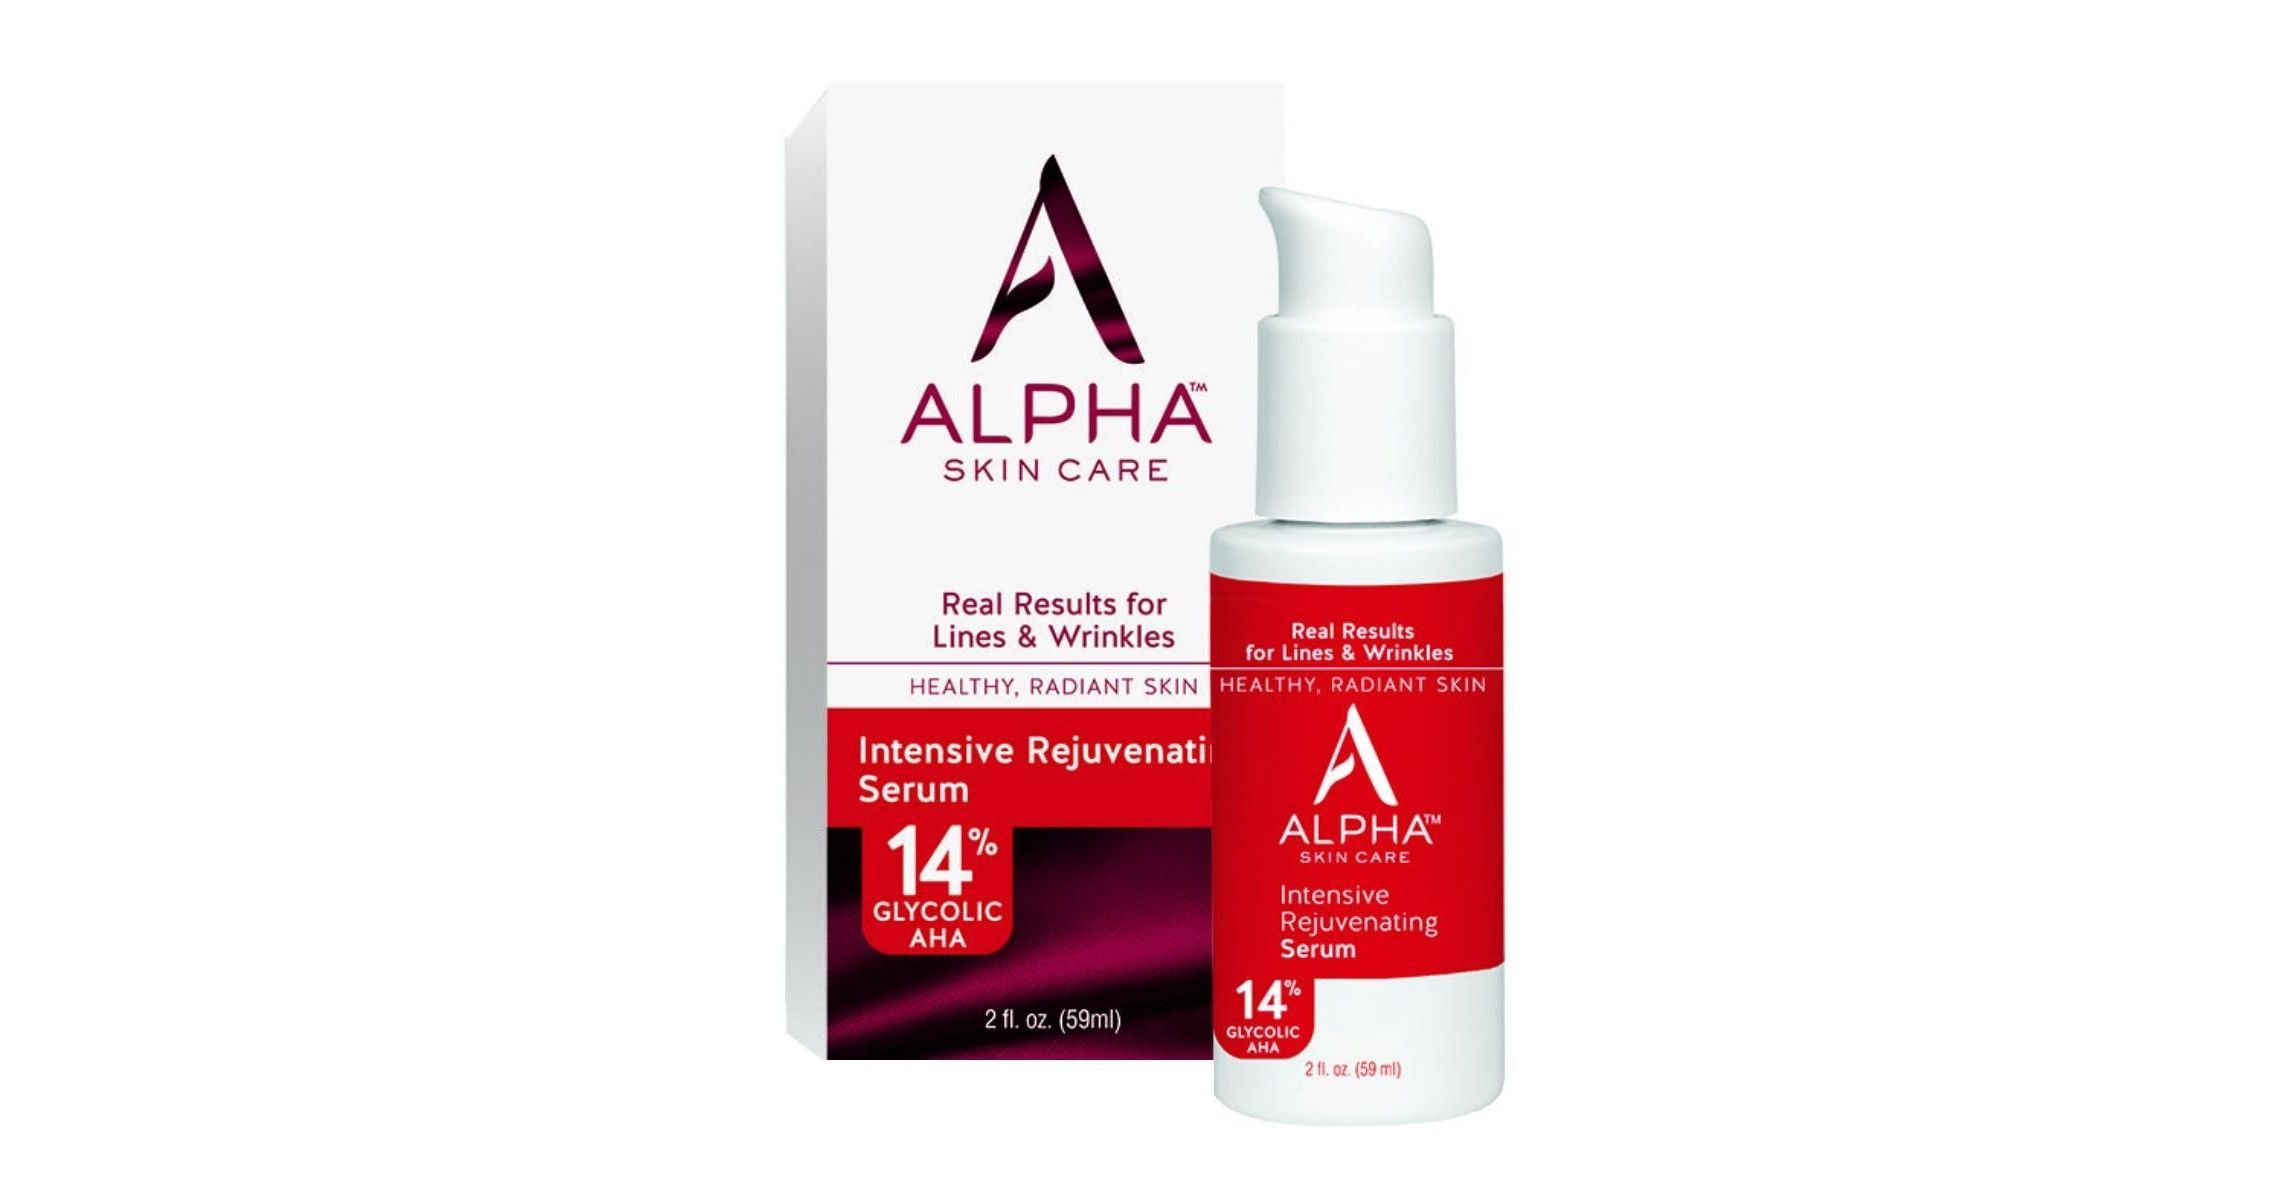 Alpha Skin Care Intensive Rejuvinating Serum 14 Glycolic Aha Reviews Photos Ingredients